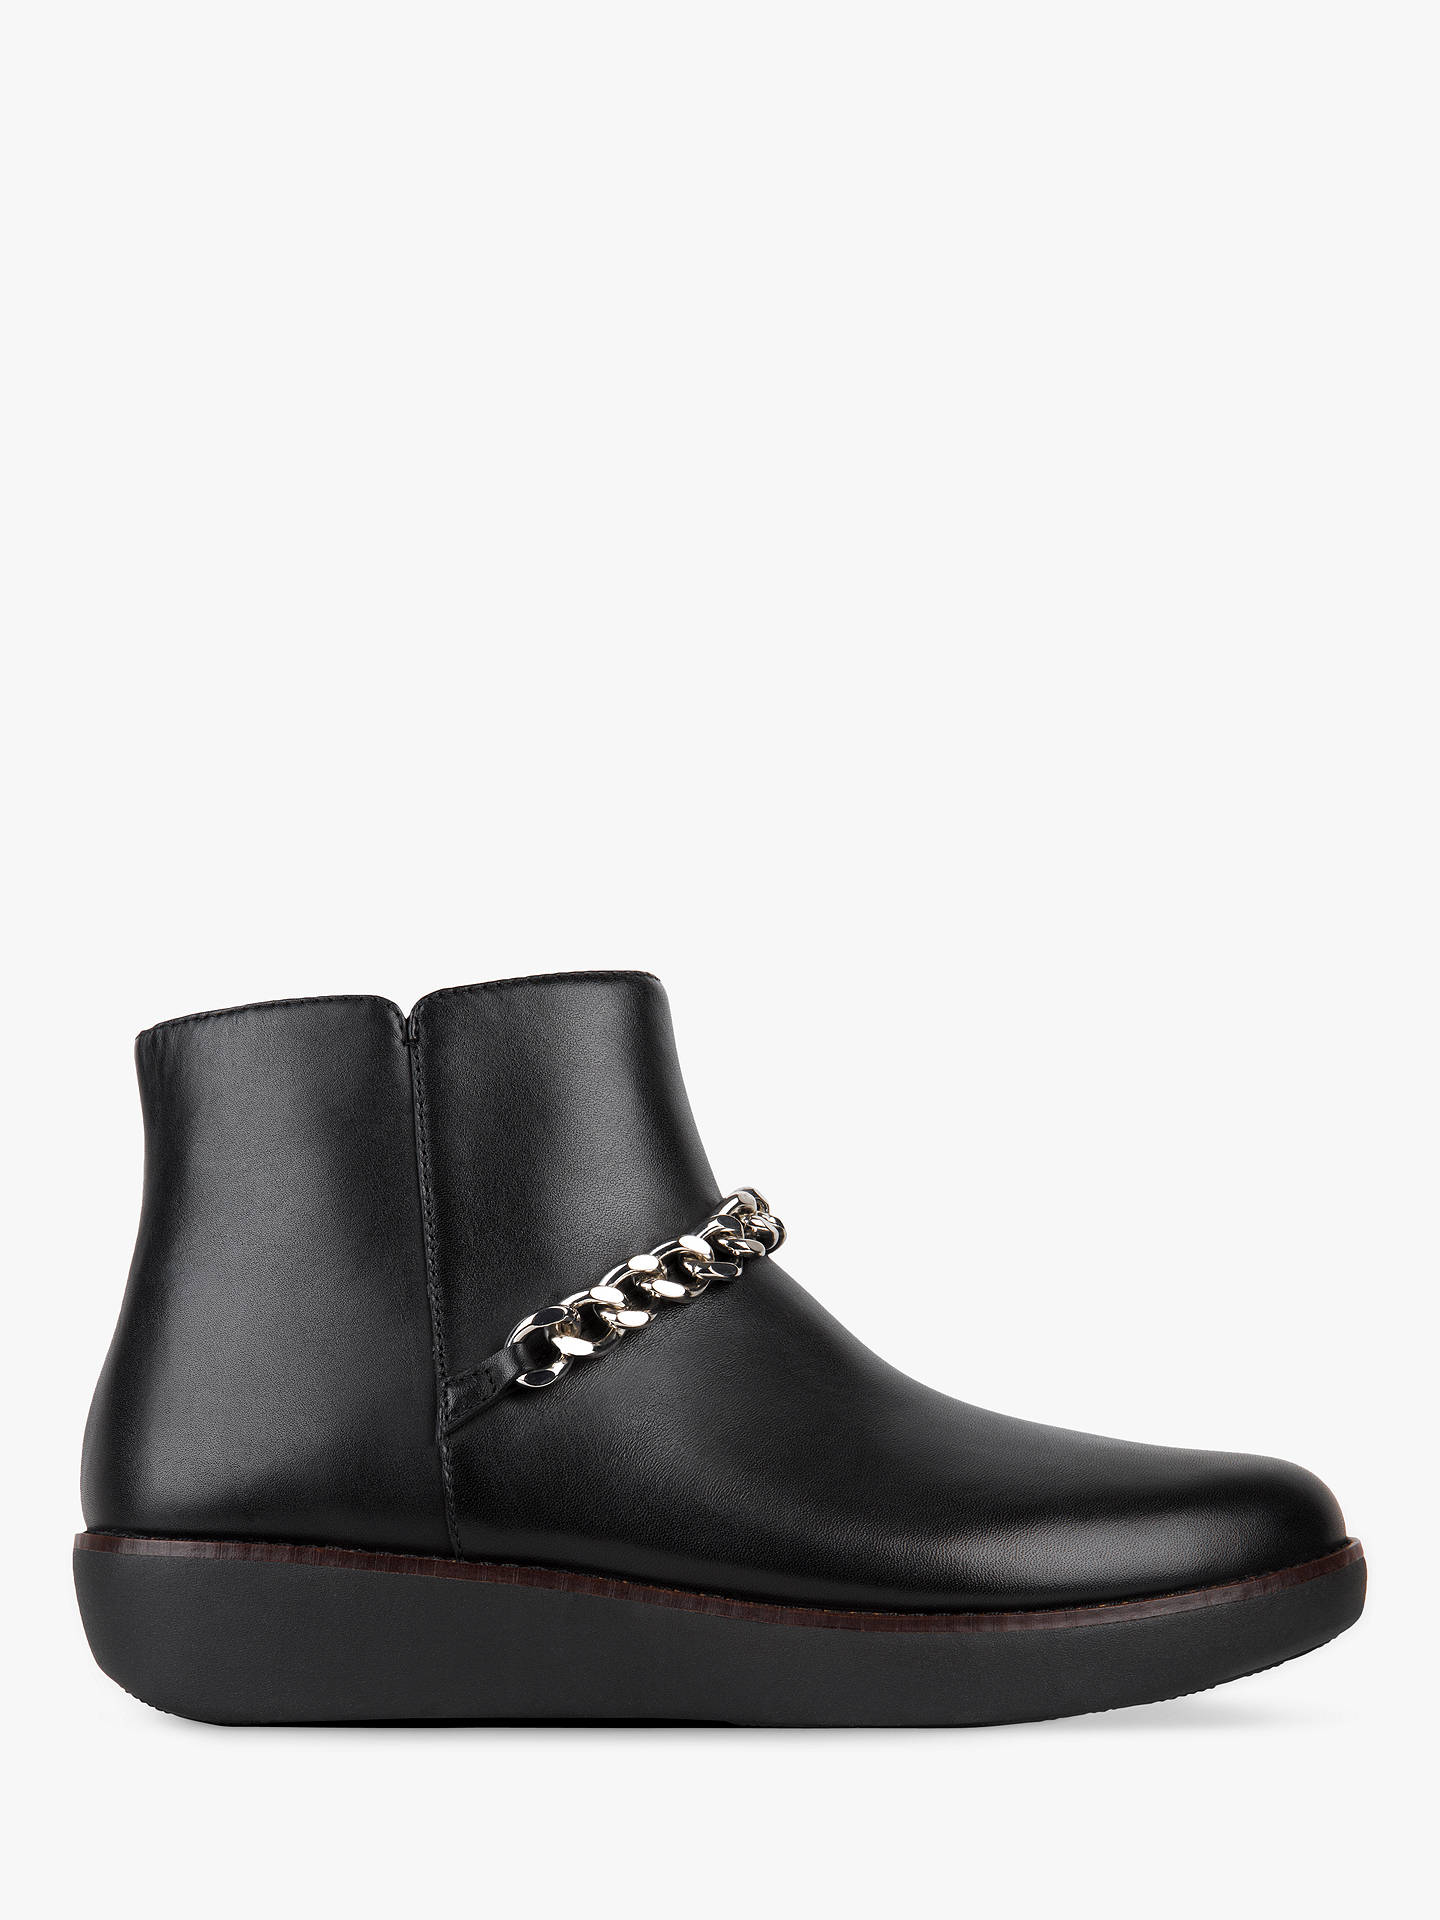 dddf12194a2 FitFlop Pia Chain Detail Flatform Ankle Boots, Black Leather